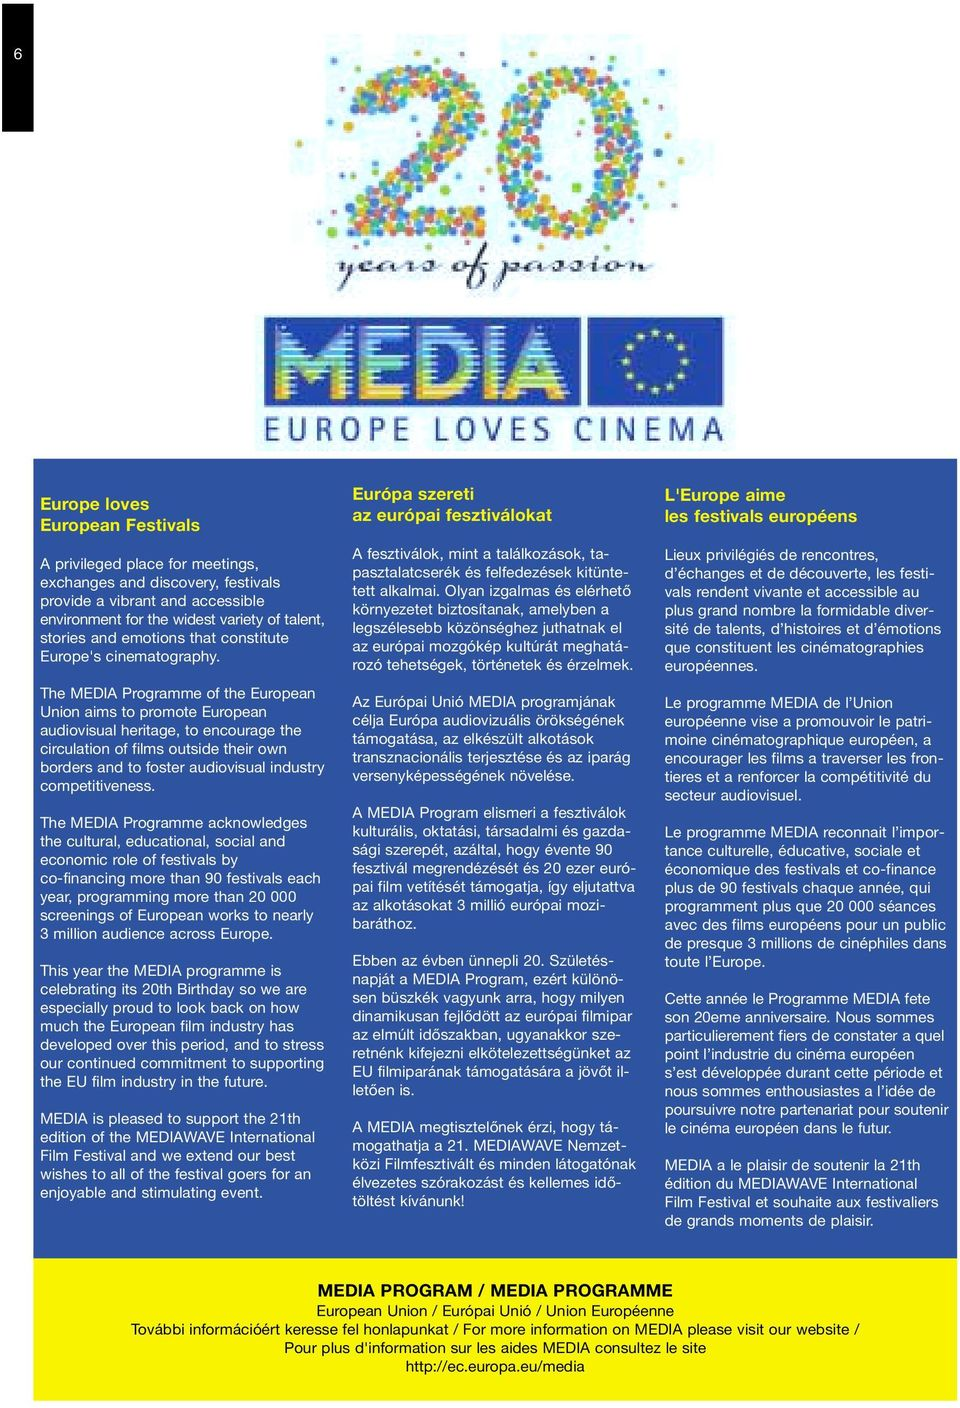 The MEDIA Programme of the European Union aims to promote European audiovisual heritage, to encourage the circulation of films outside their own borders and to foster audiovisual industry